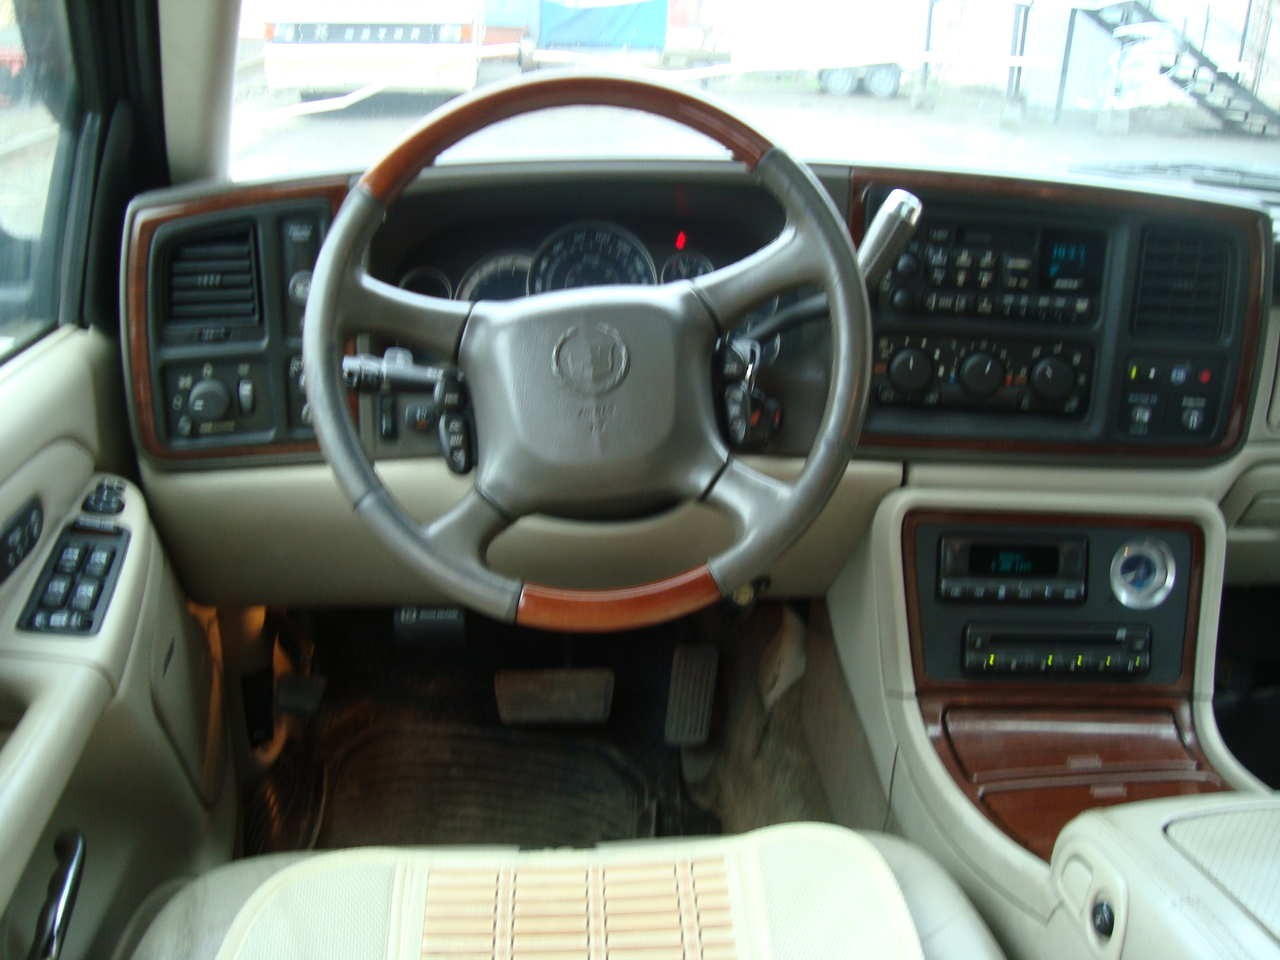 6 Speed Transmission >> 2001 Cadillac Escalade specs, Engine size 5.7l., Fuel type ...